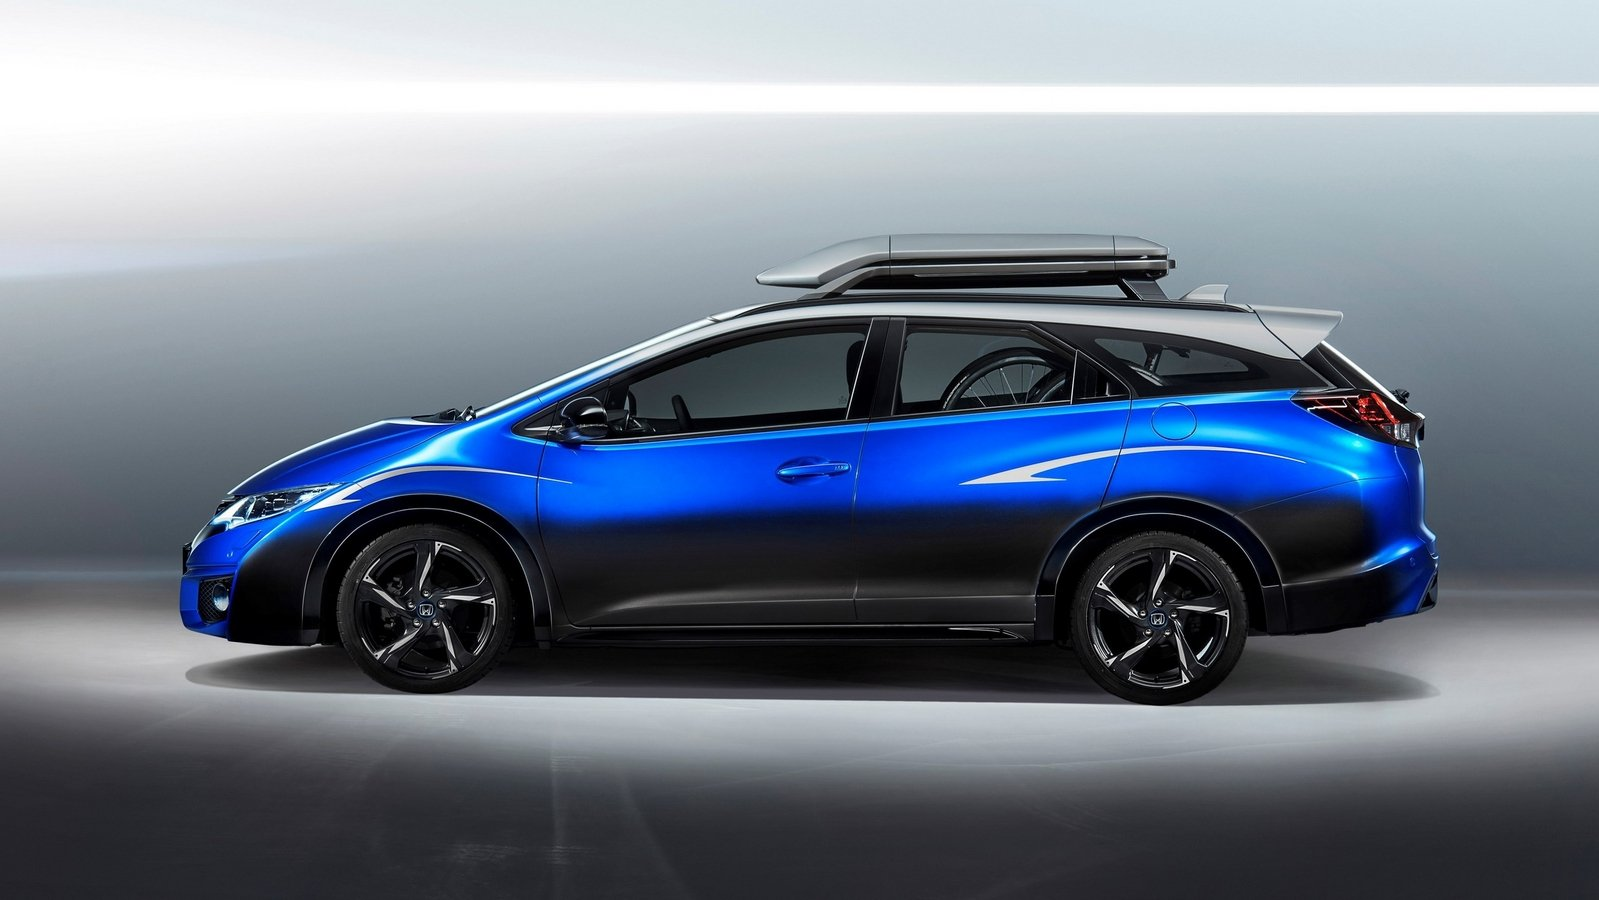 2016 honda civic tourer active life concept review top speed for Honda civic 2016 top speed